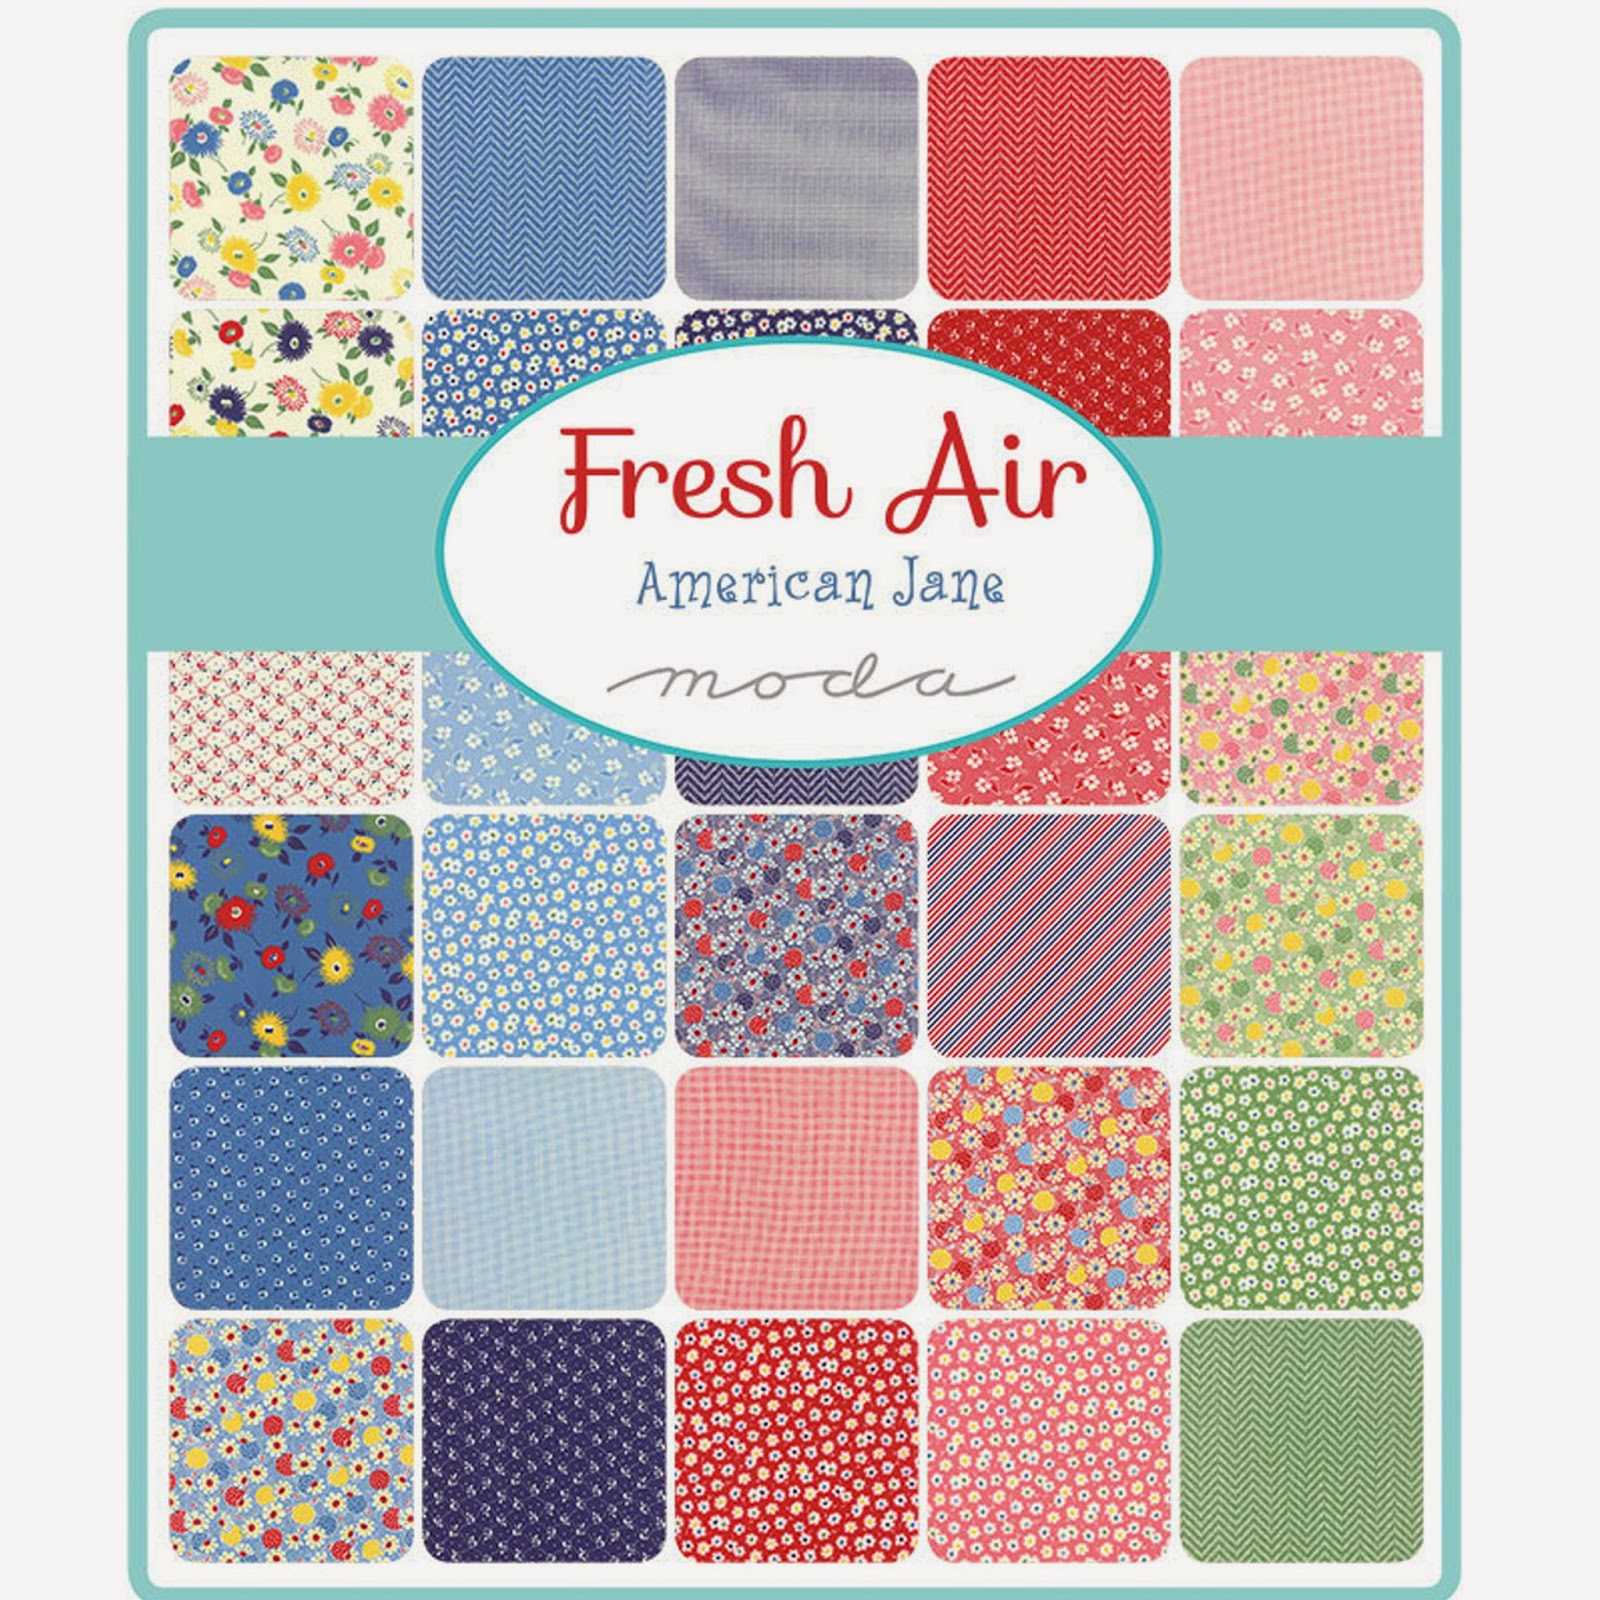 Moda FRESH AIR Fabric by American Jane for Moda Fabrics